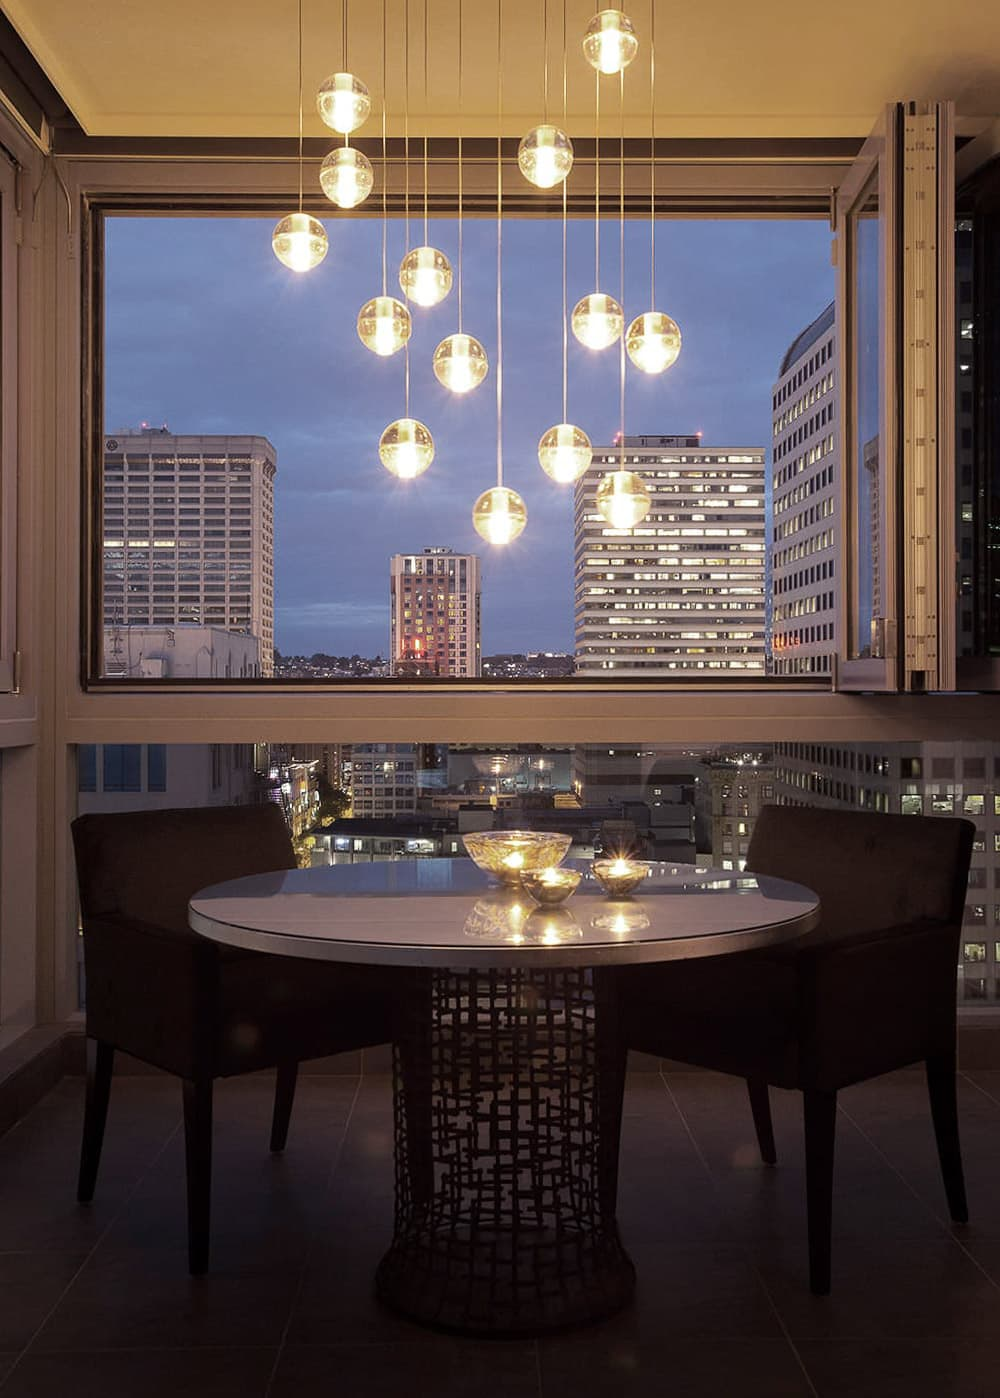 Inside | OUT - In the midst of the city, the outdoor dining room is a dramatic evening spot. The pendant glass lights mimic the evening city lights. The steel table base and silver leaf top capture the city textures.